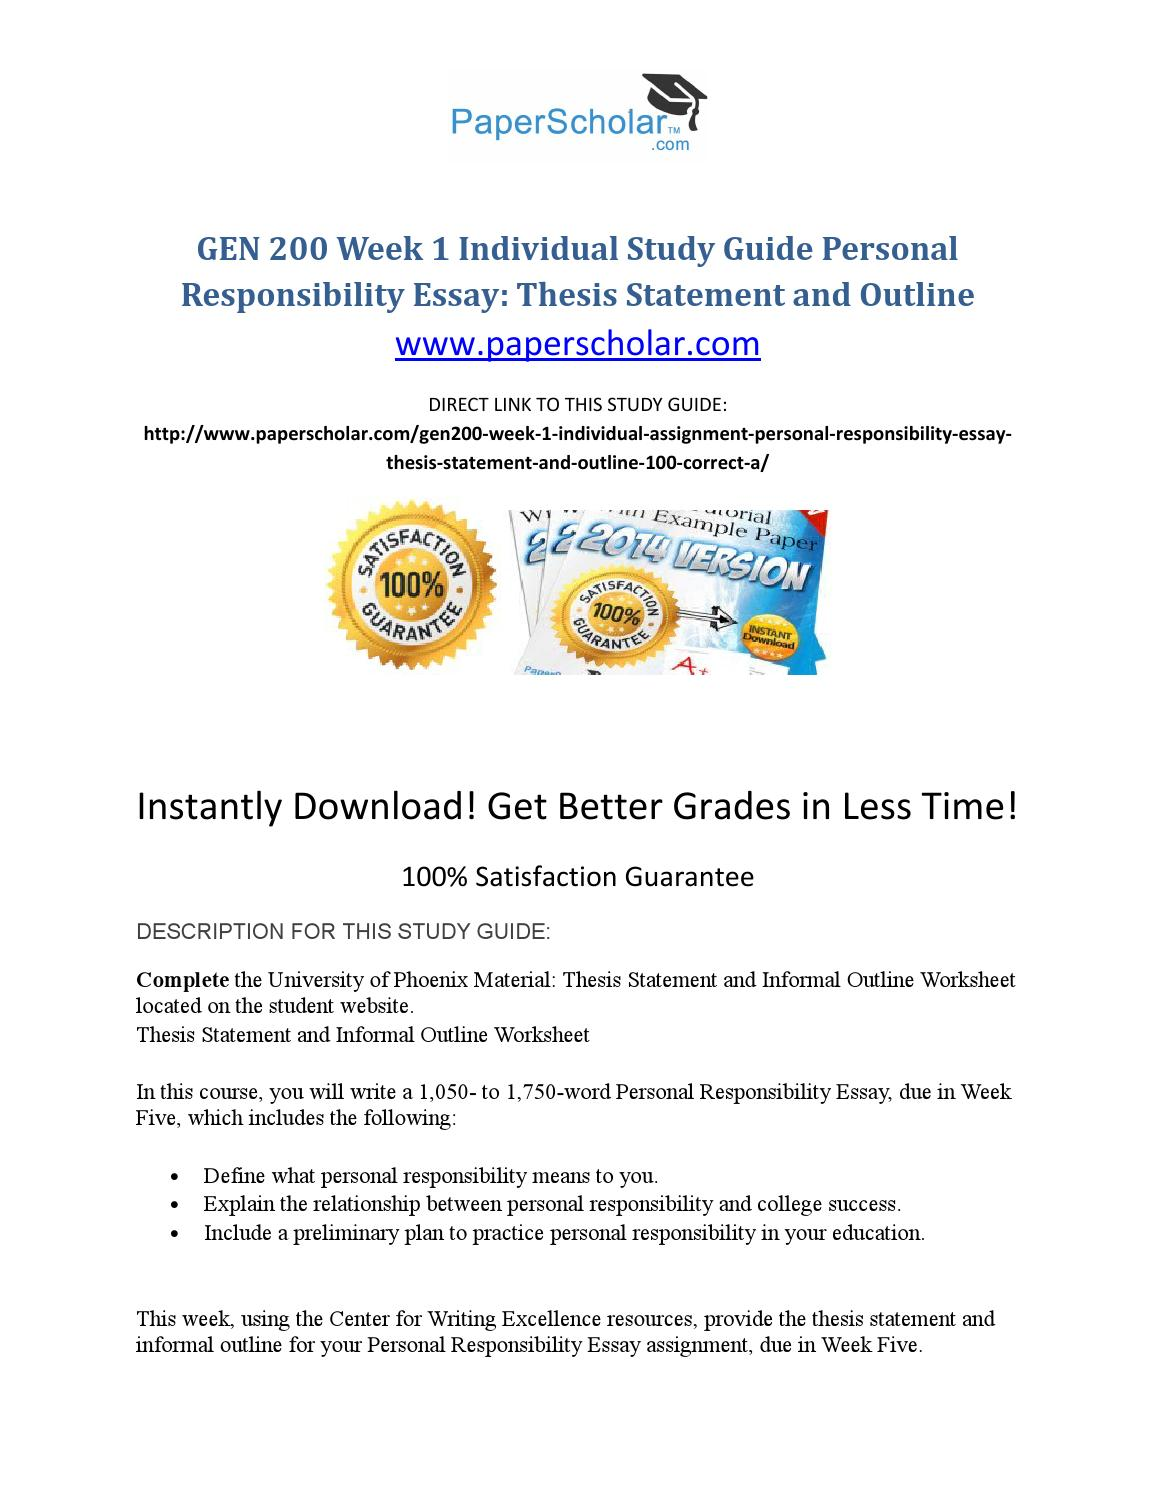 English Learning Essay Gen  Week  Individual Study Guide Personal Responsibility Essay Thesis  Statement And Outline By Jahidmax  Issuu English Reflective Essay Example also English Composition Essay Examples Gen  Week  Individual Study Guide Personal Responsibility Essay  Narrative Essay Example For High School